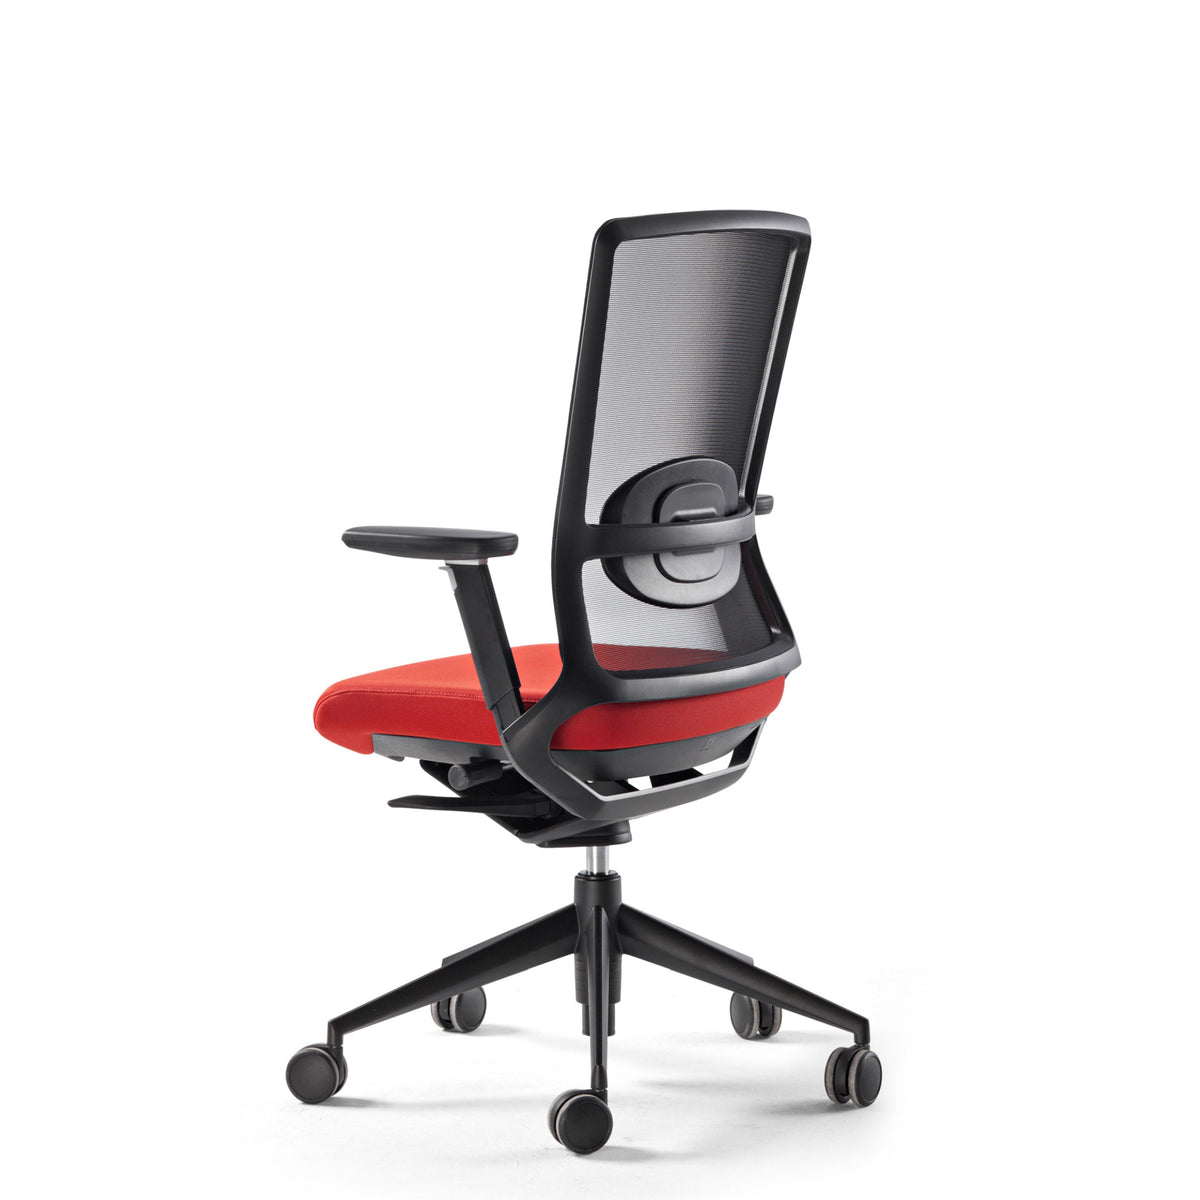 Actiu Office TNK 500 Task Chair - Mesh Back Red with Black Frame